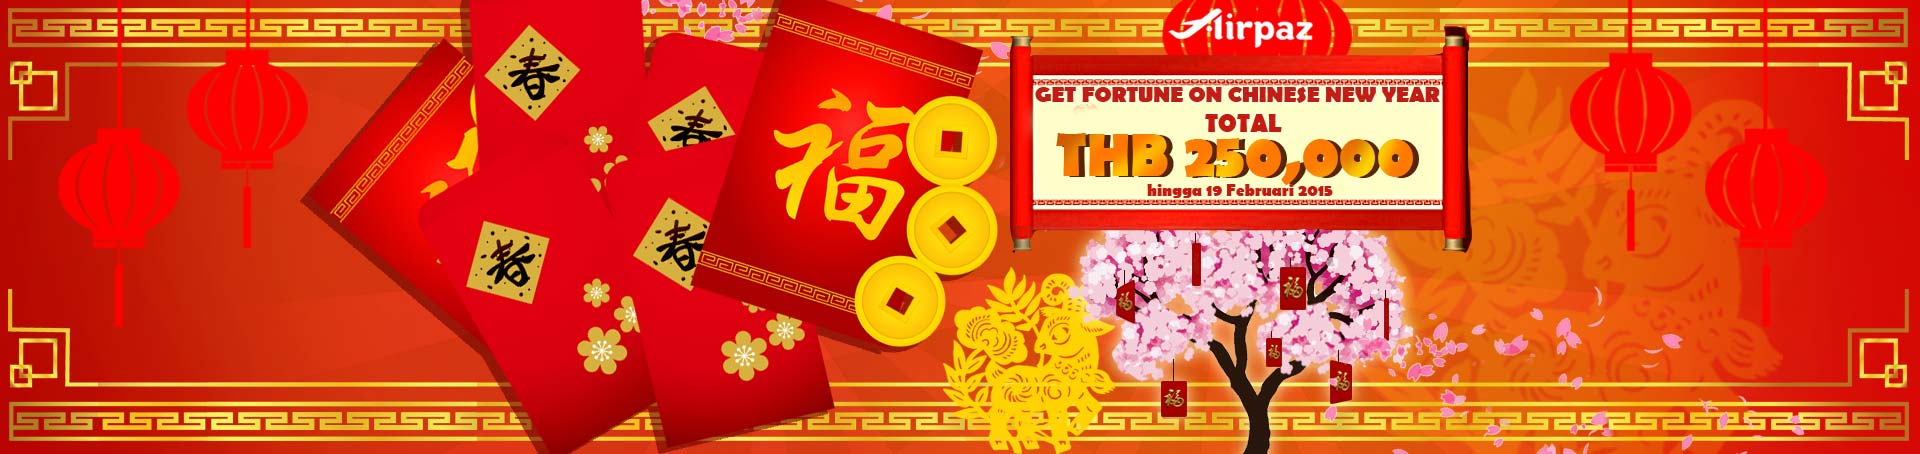 THB250.000 Chinese New Year Promo